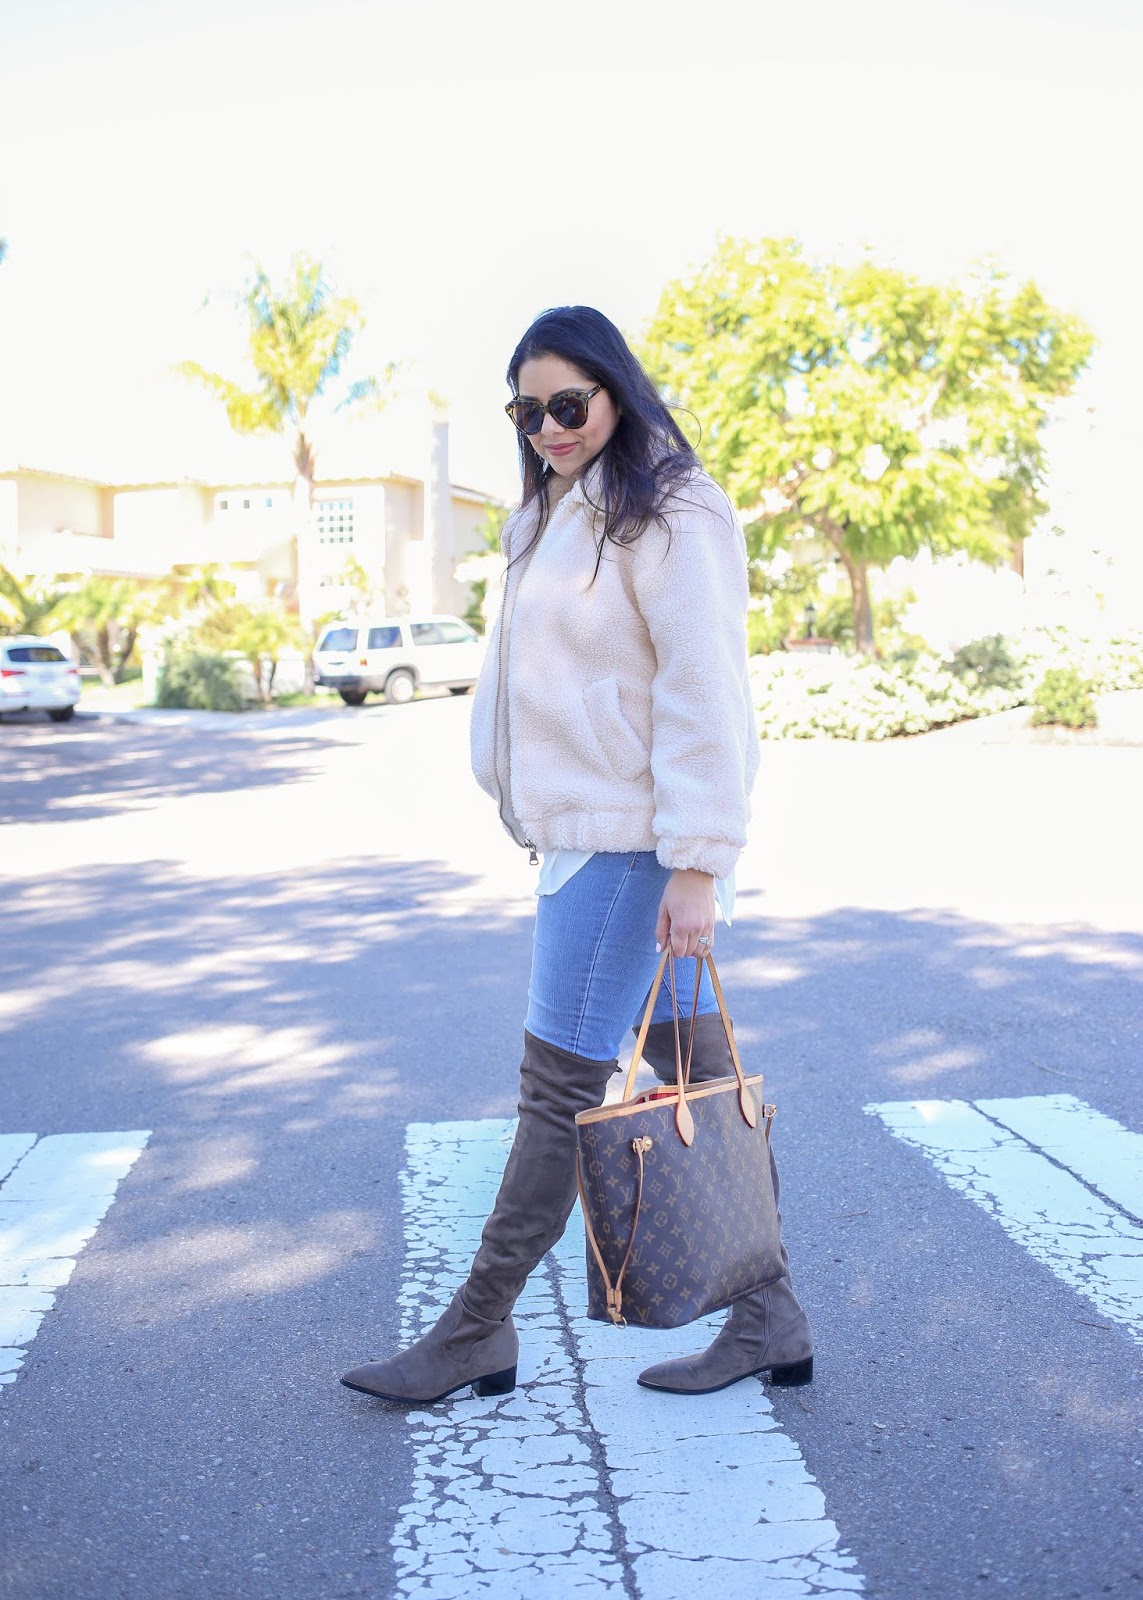 San Diego Fashion Blogger Winter Lookbook, Socal winter lookbook